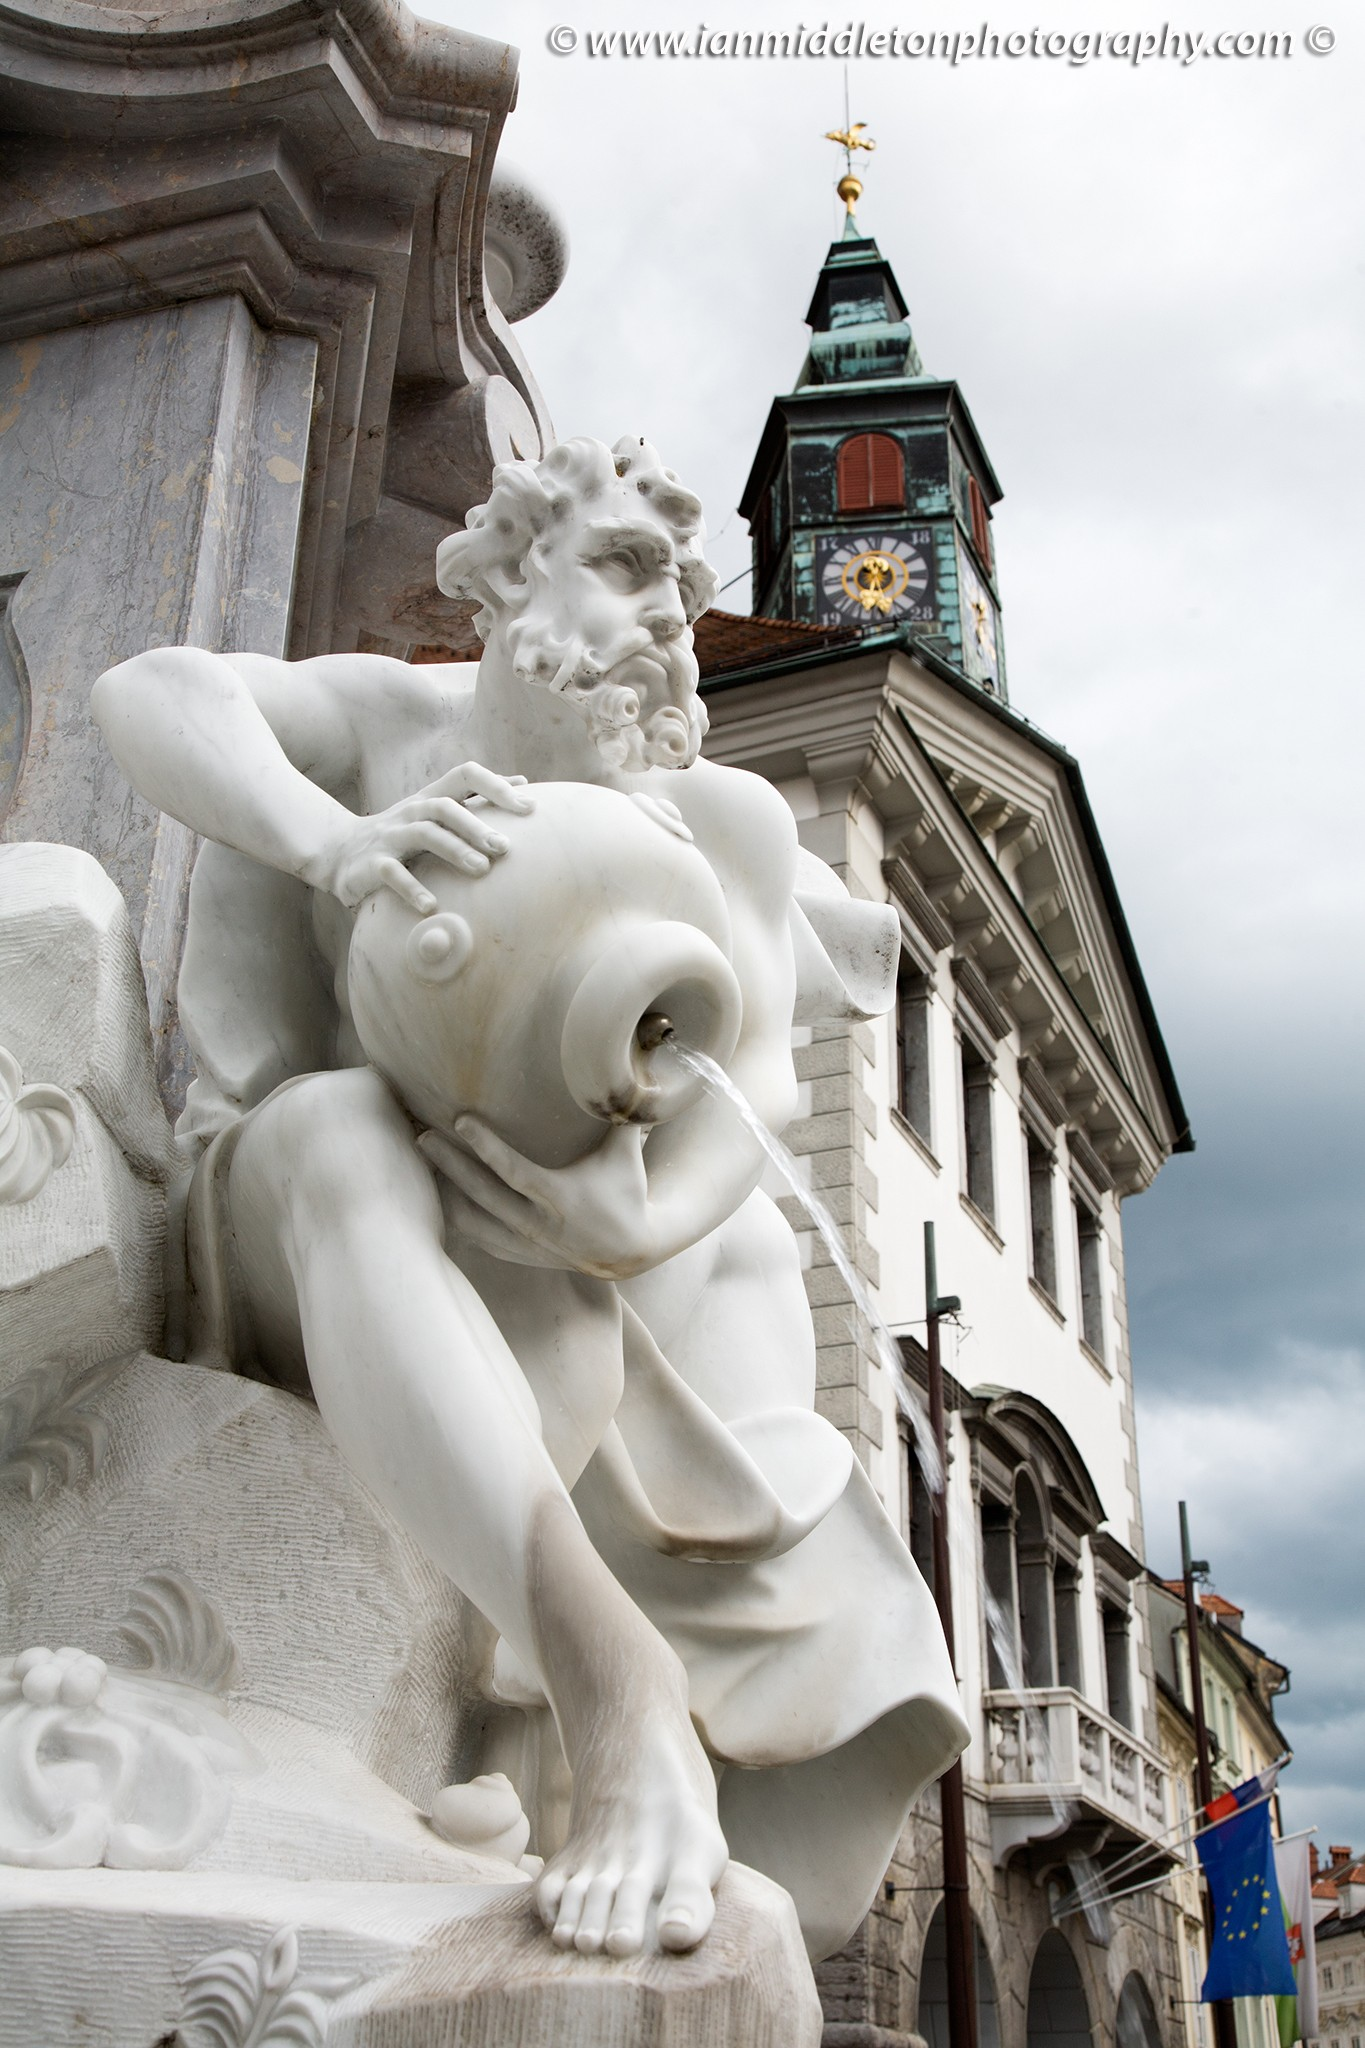 Robba Fountain, also known as the Fountain of Three Carniolan Rivers.It sits in the old town square (Mestni Trg) in front of the town hall. Built in 1751, this famous fountain is named after its creator, the Italian Baroque sculptor Francesco Robba (1698-1757). The pool is in the shape of a three leaf clover and from it rises a three sided obilisk. The fountain is adorned with the statues of the three river Gods: Krka, Ljubljanica and Sava, also the names of three of Slovenia's main rivers. The original has been removed and placed in a museum for protection, due to its fragile nature, and has been replaced with a replica. In the background is the city hall and the EU flag